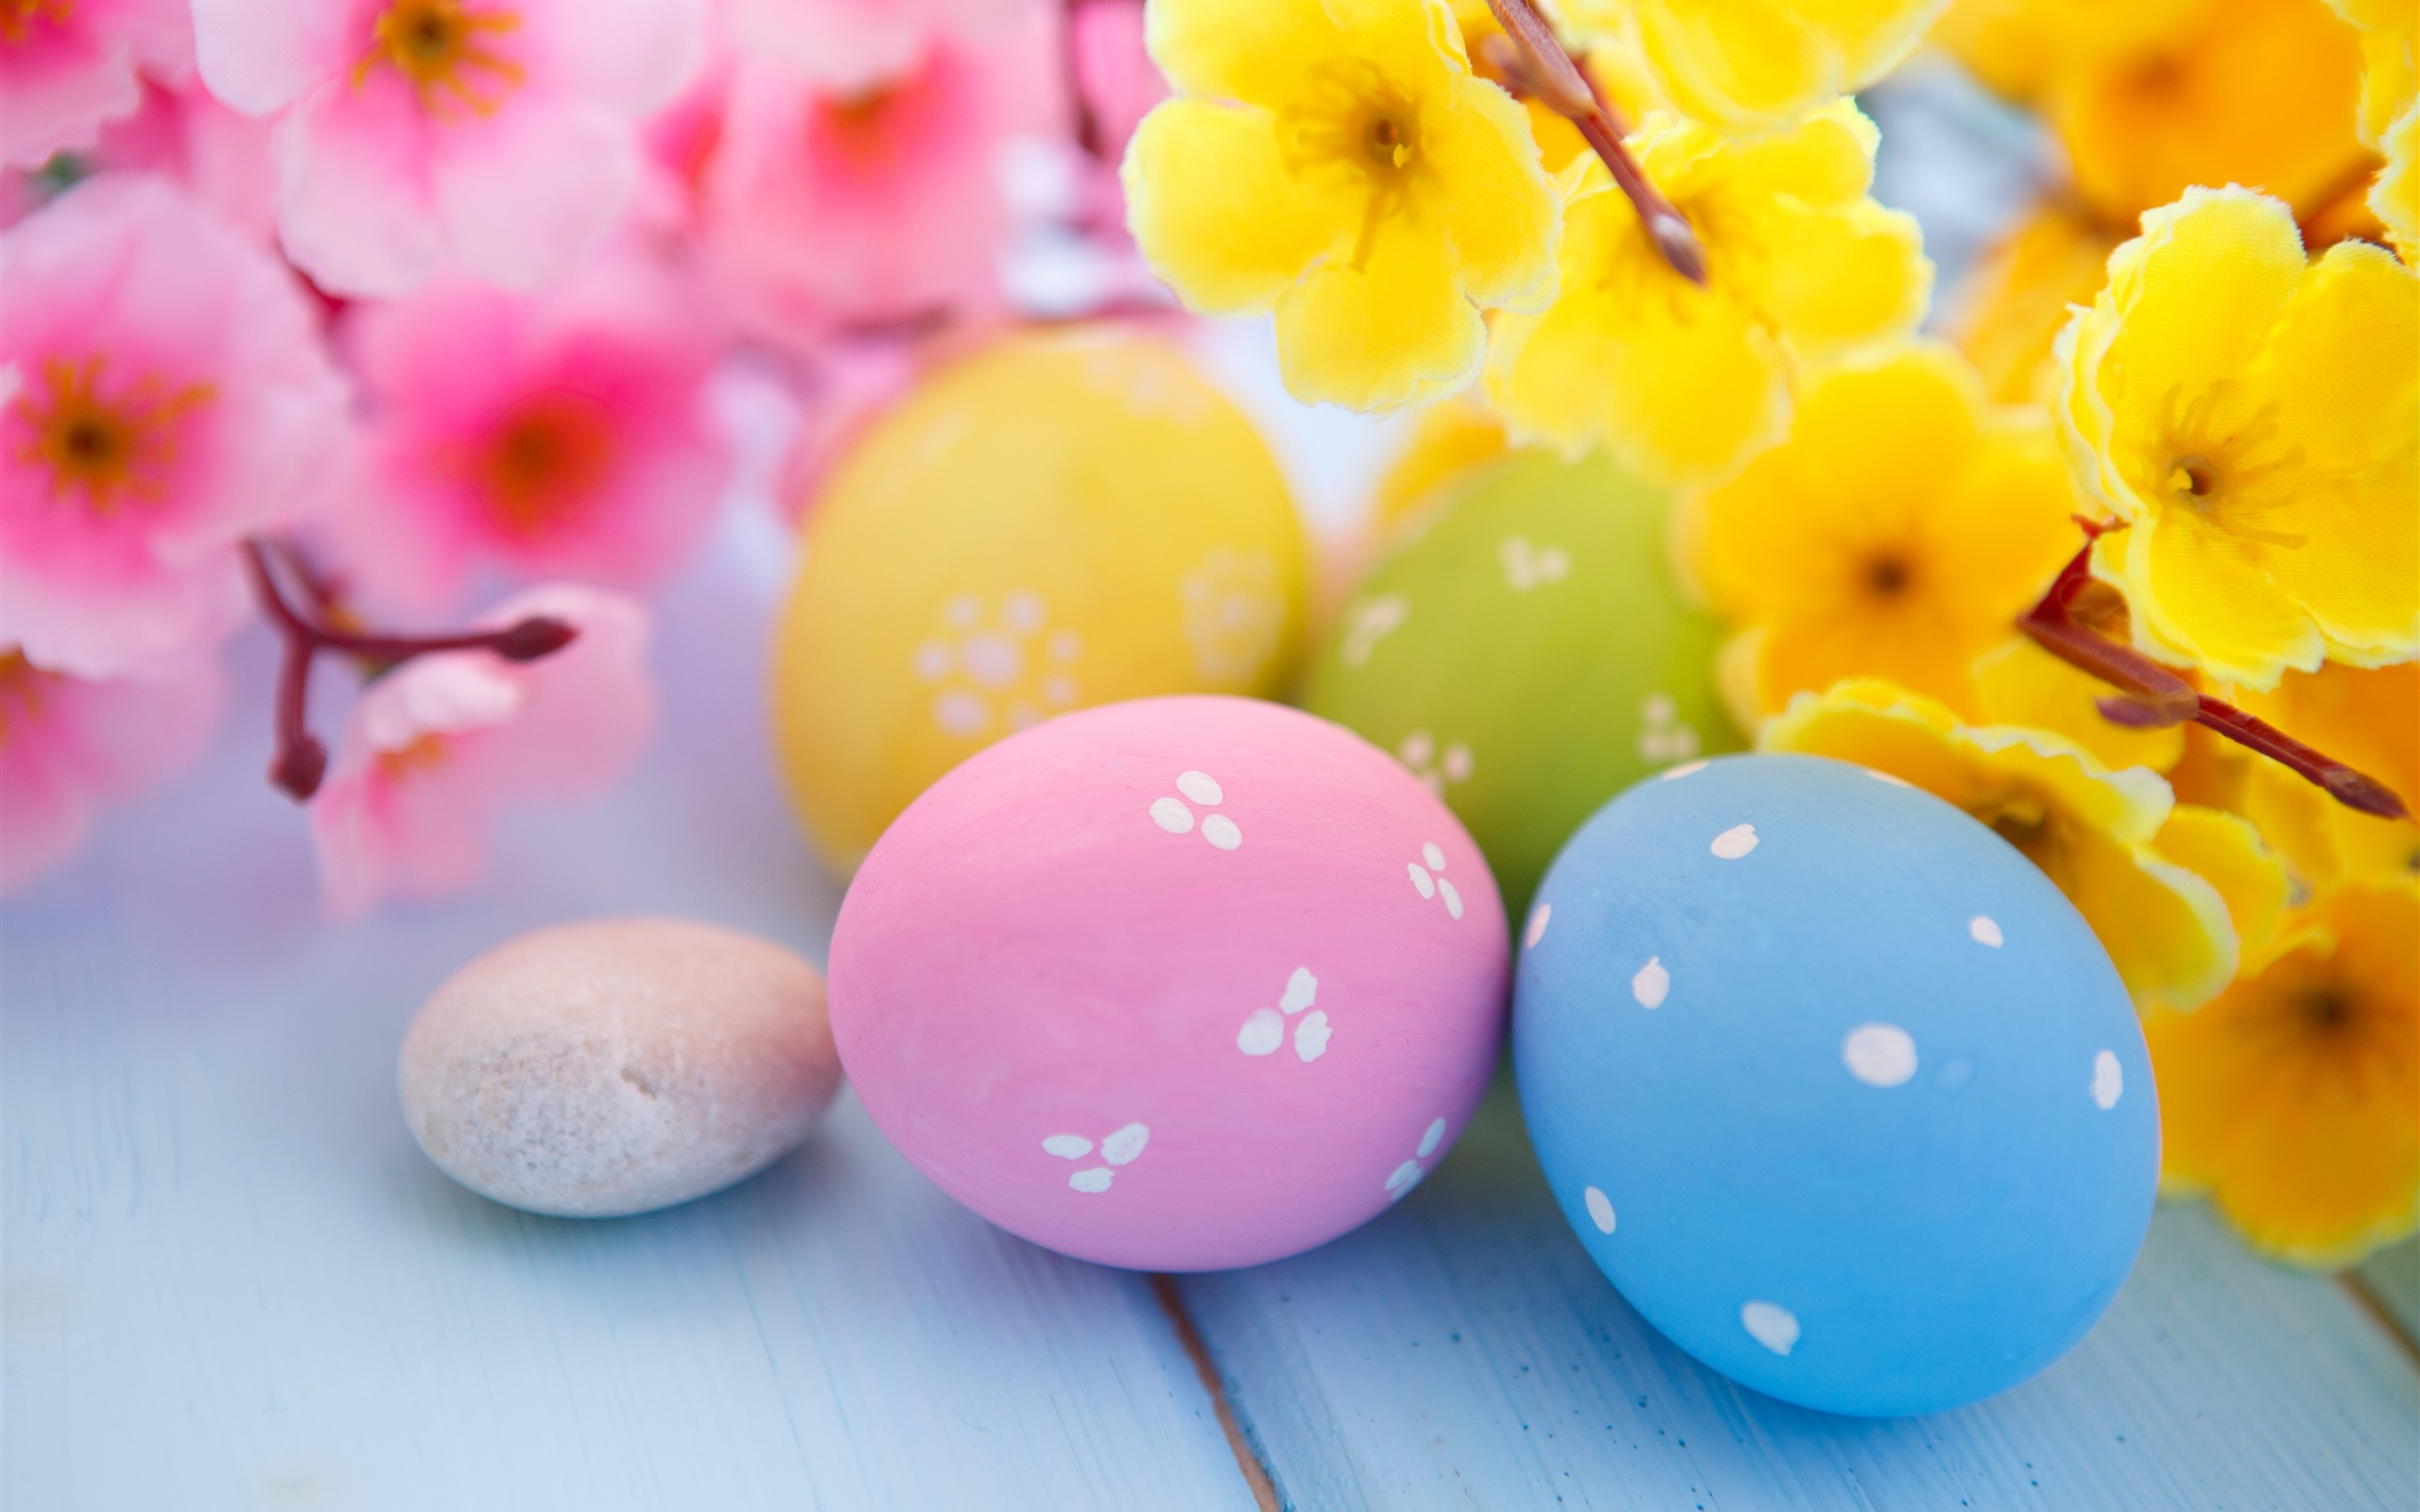 Wallpaper easter flowers eggs spring 2560x1600 hd picture image download this wallpaper mightylinksfo